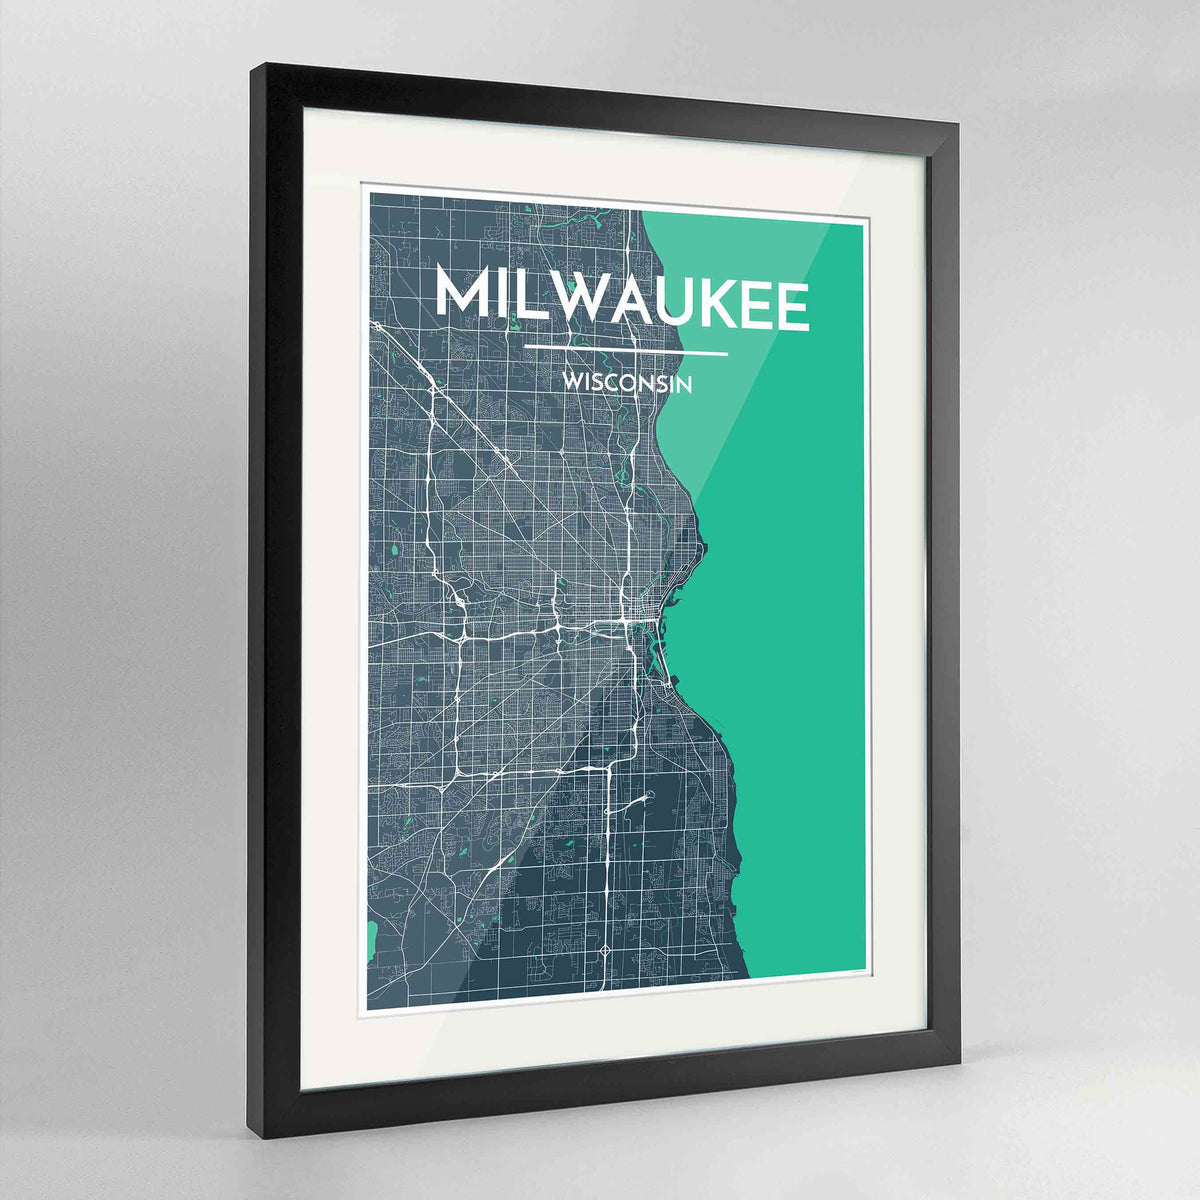 "Framed Milwaukee City Map 24x36"" Contemporary Black frame Point Two Design Group"